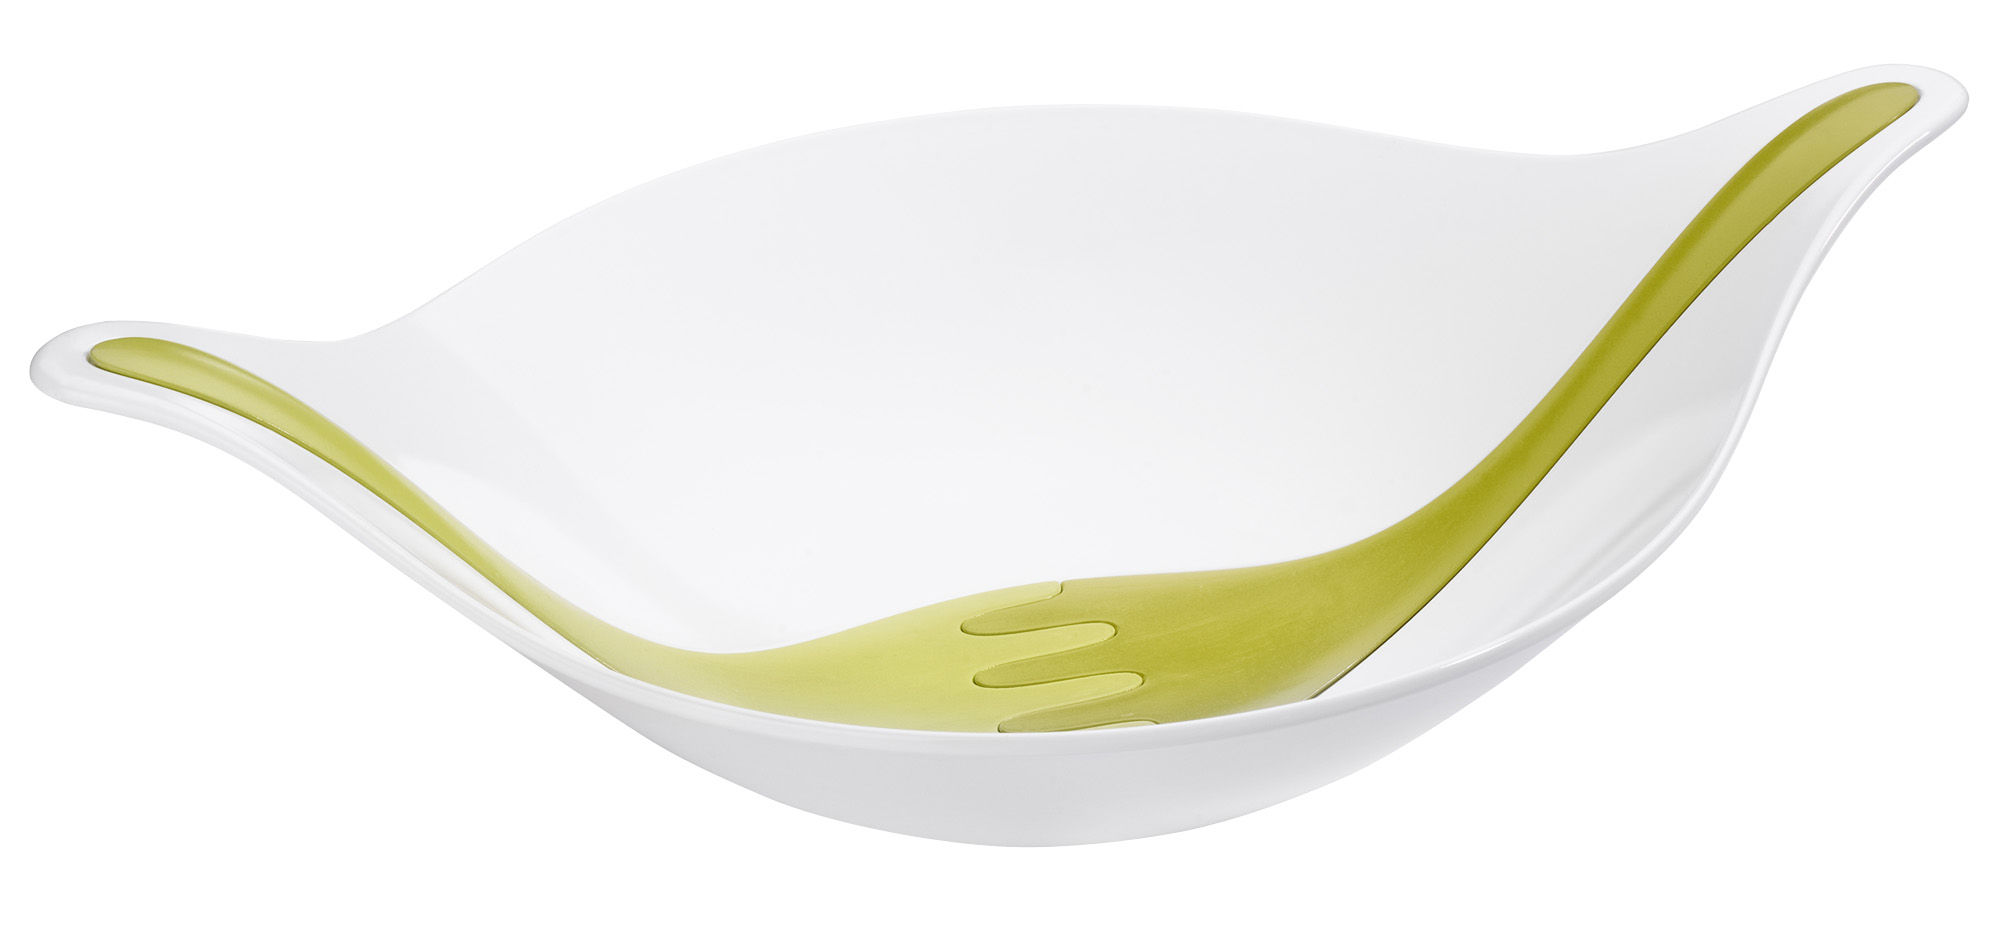 Tableware - Bowls - Leaf XL+ Salad bowl - with cutlery by Koziol - White salad bowl / Mustard and olive yellow servers - Plastic